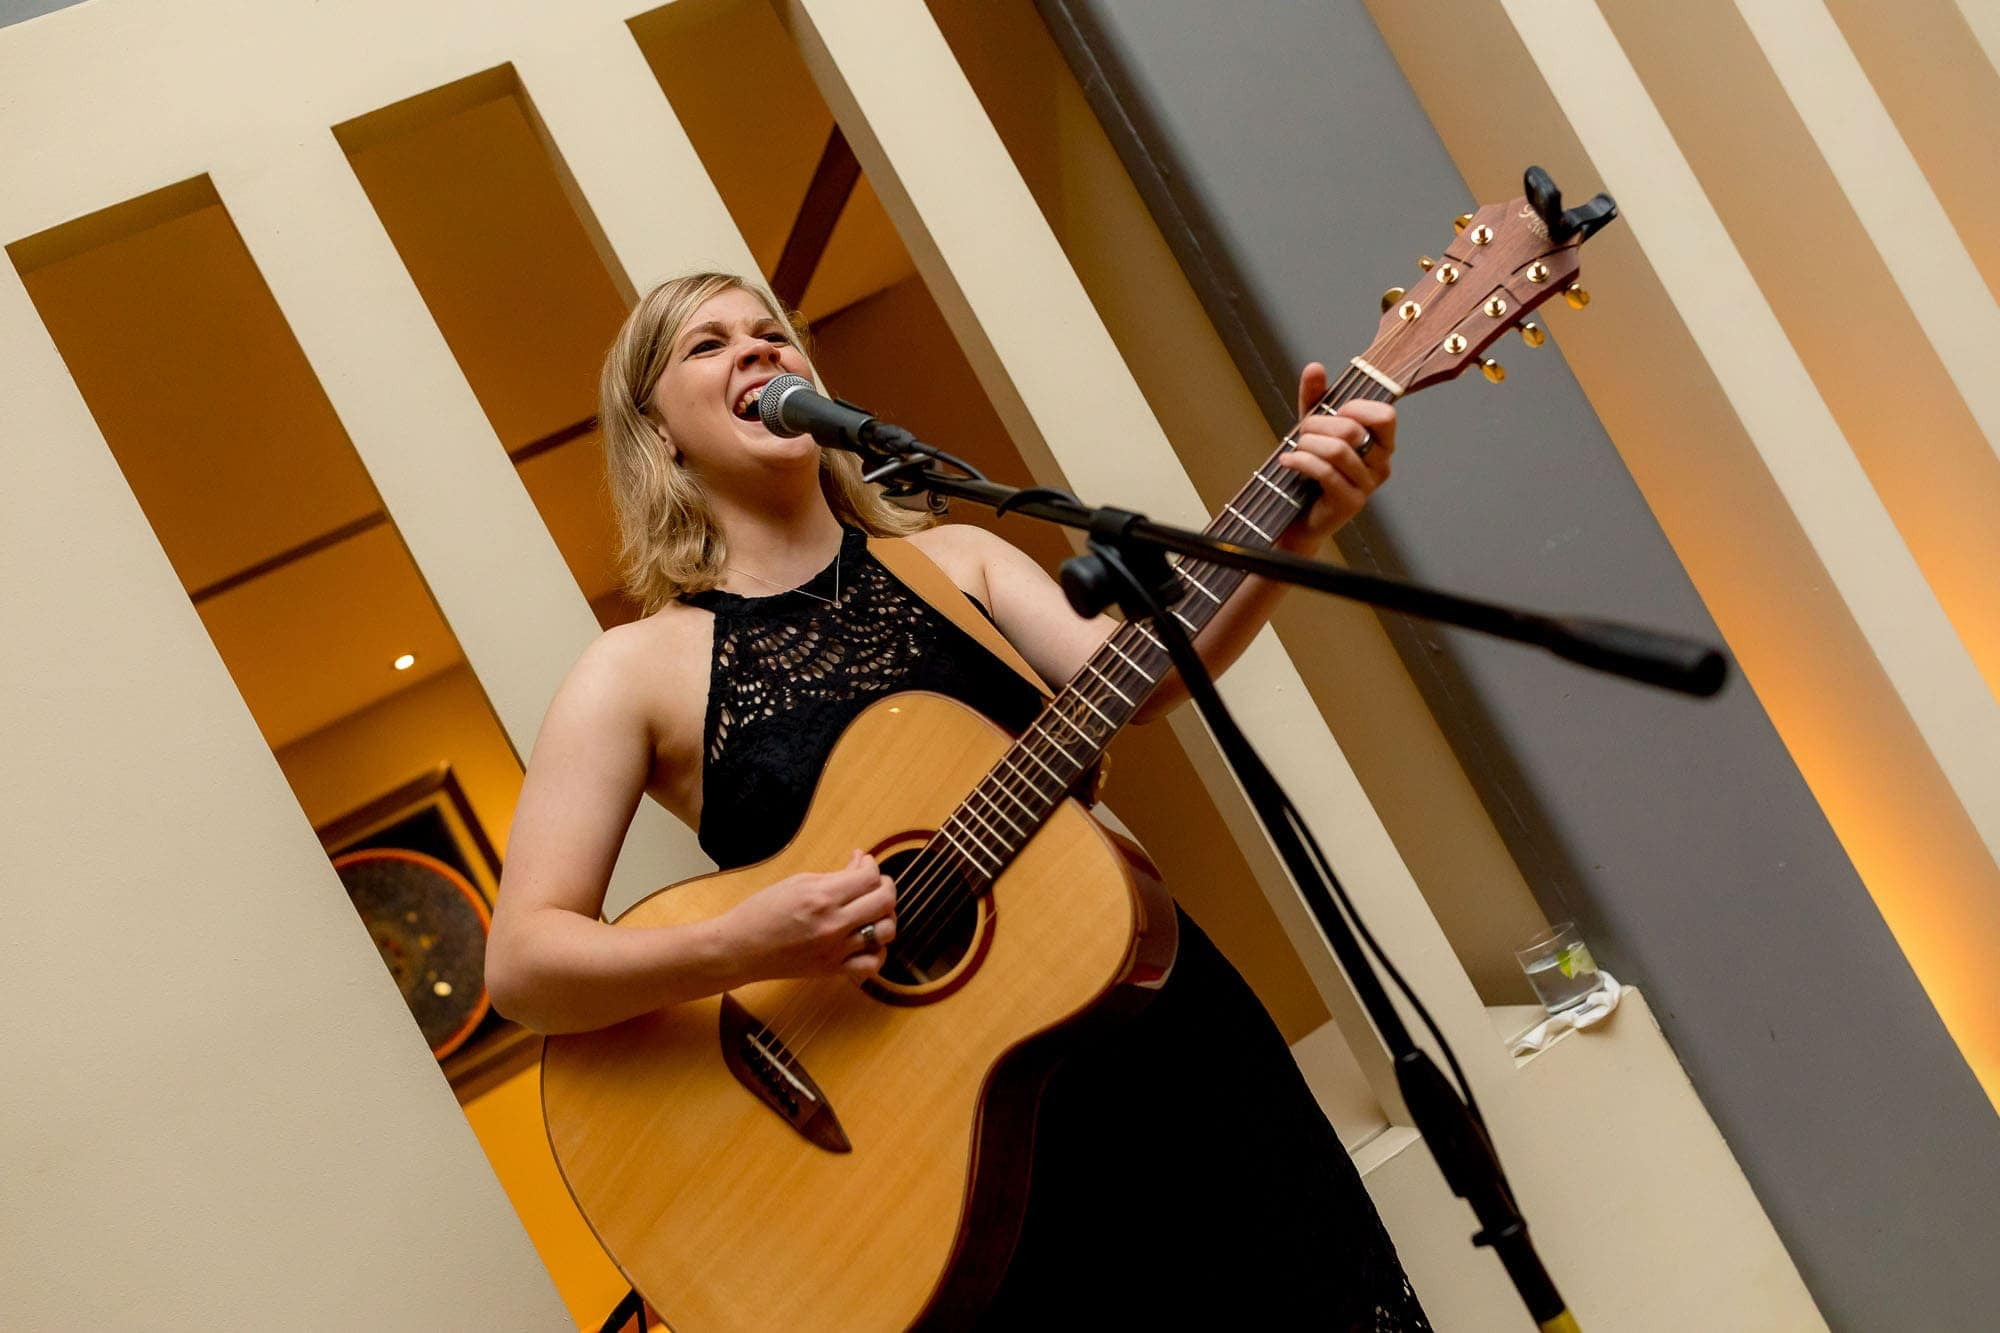 Melody Kiser musician and vocalist